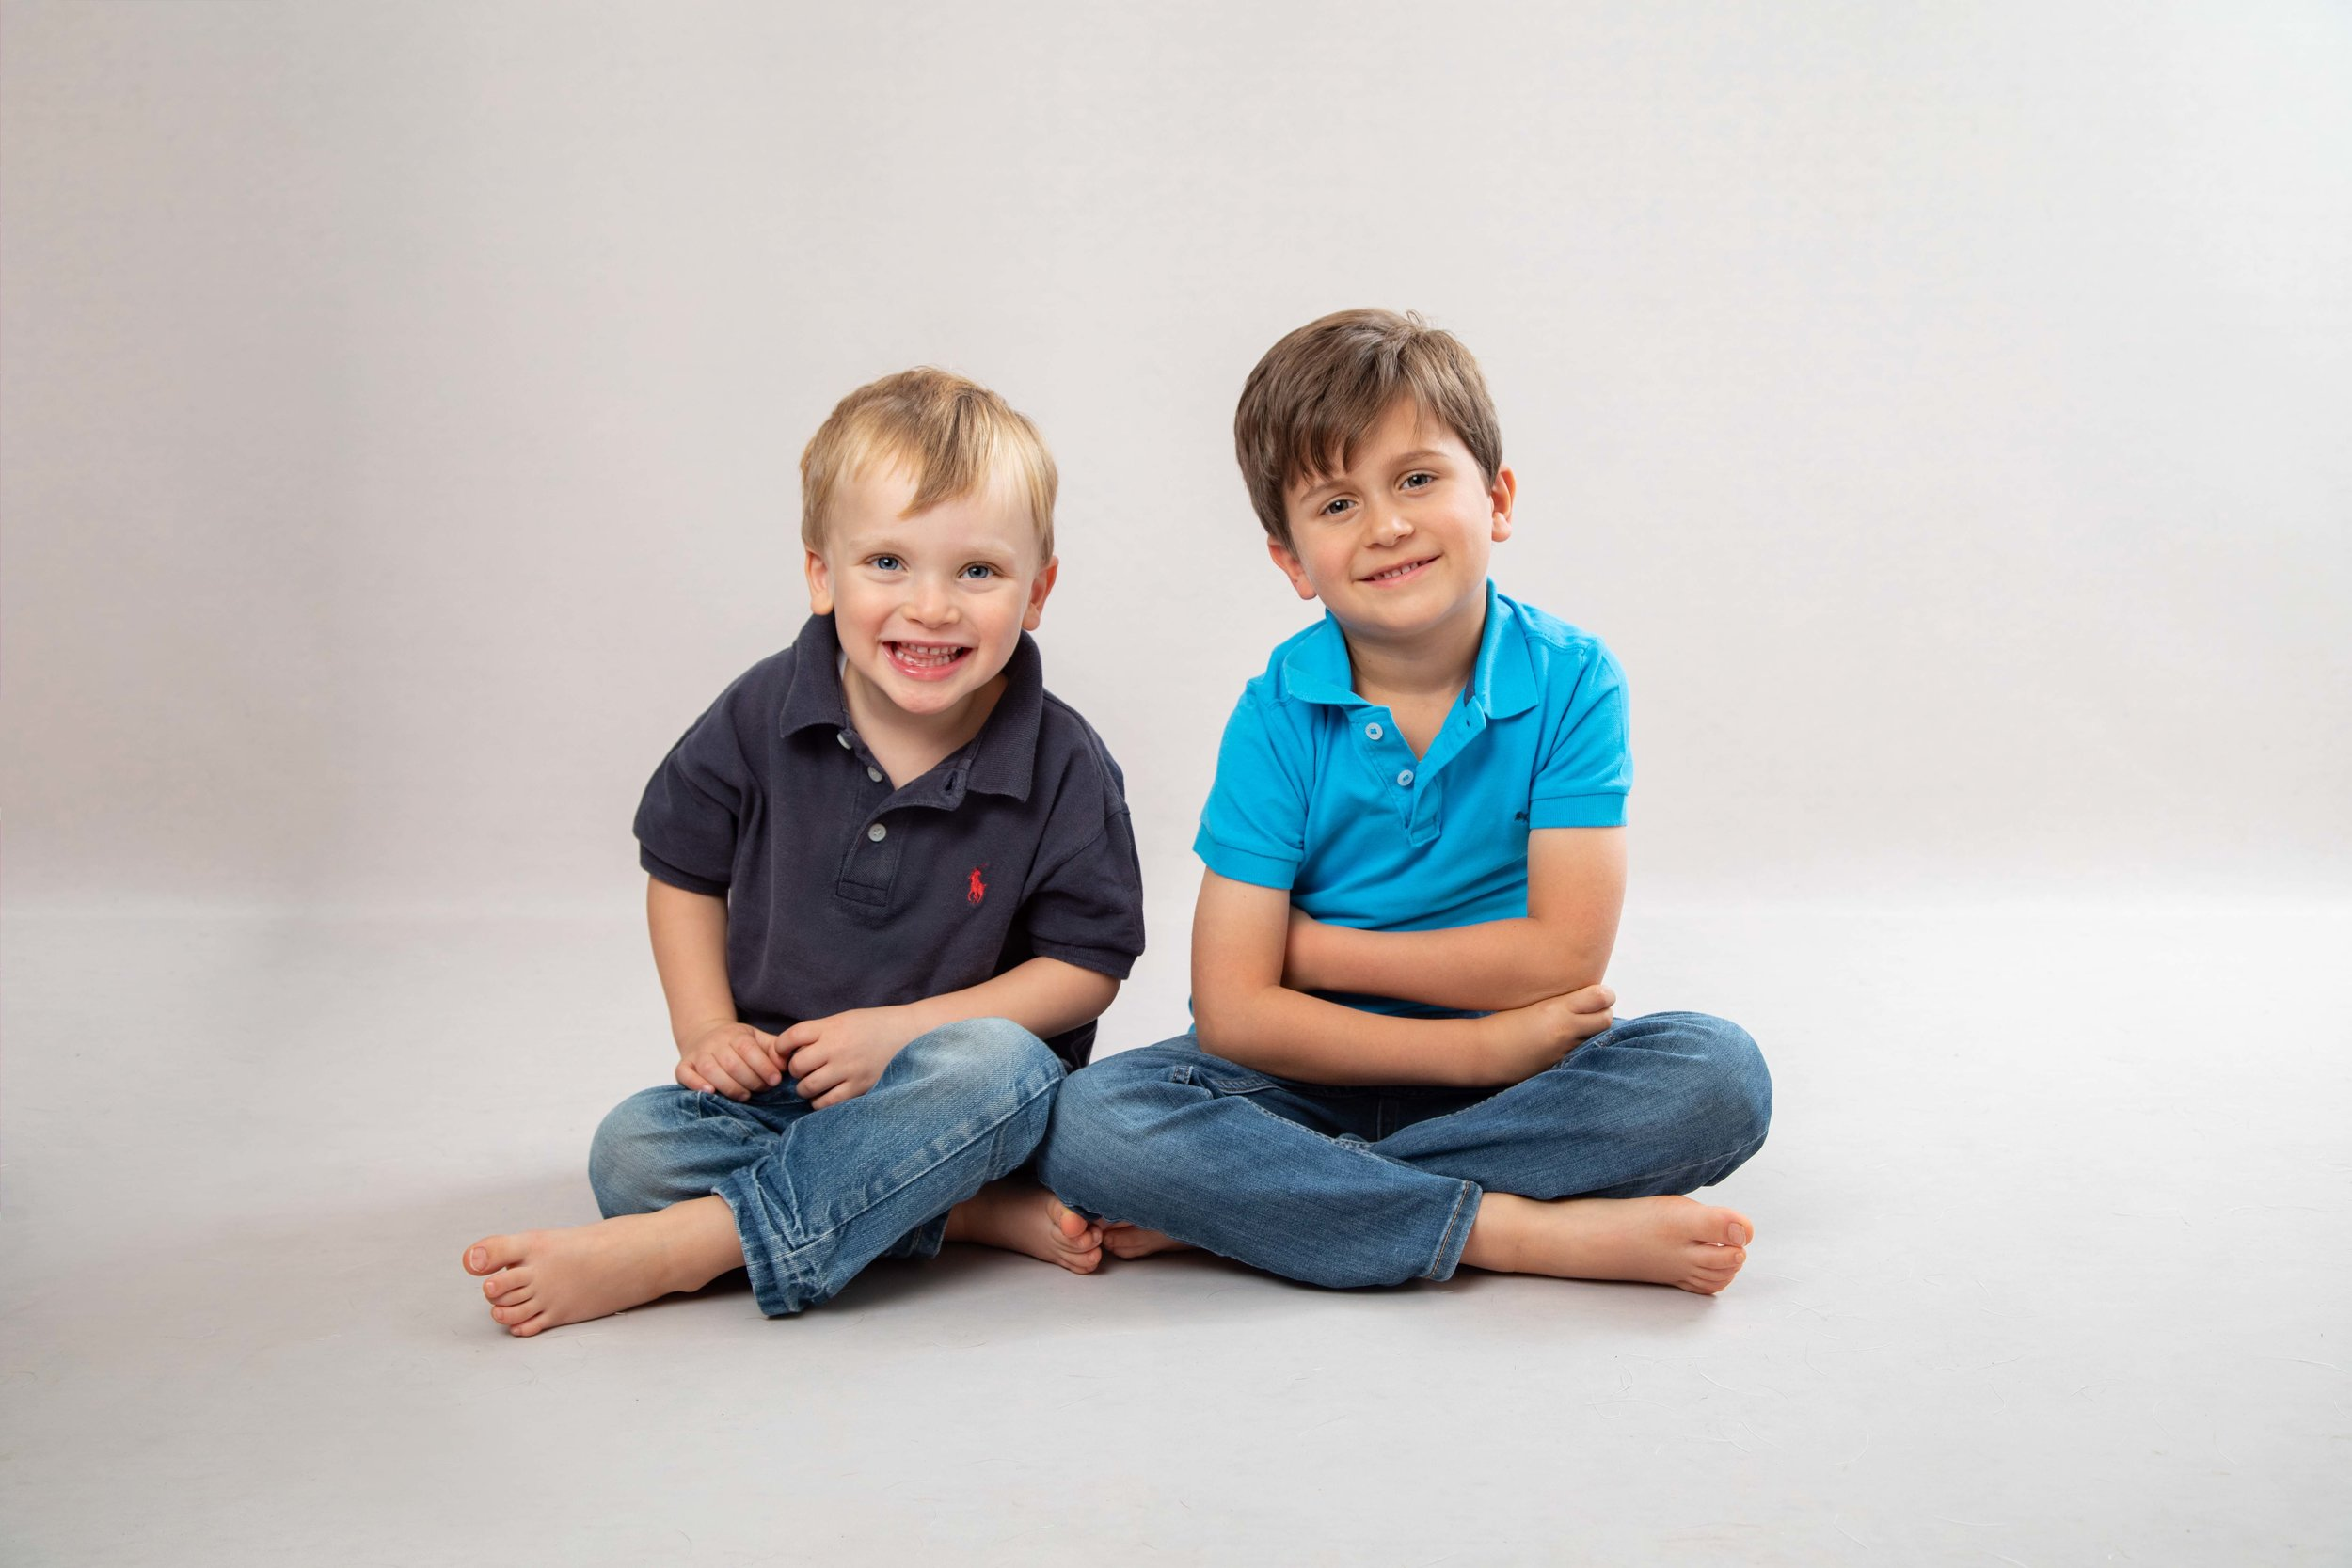 Family photography in studio, Dulwich SE21, London